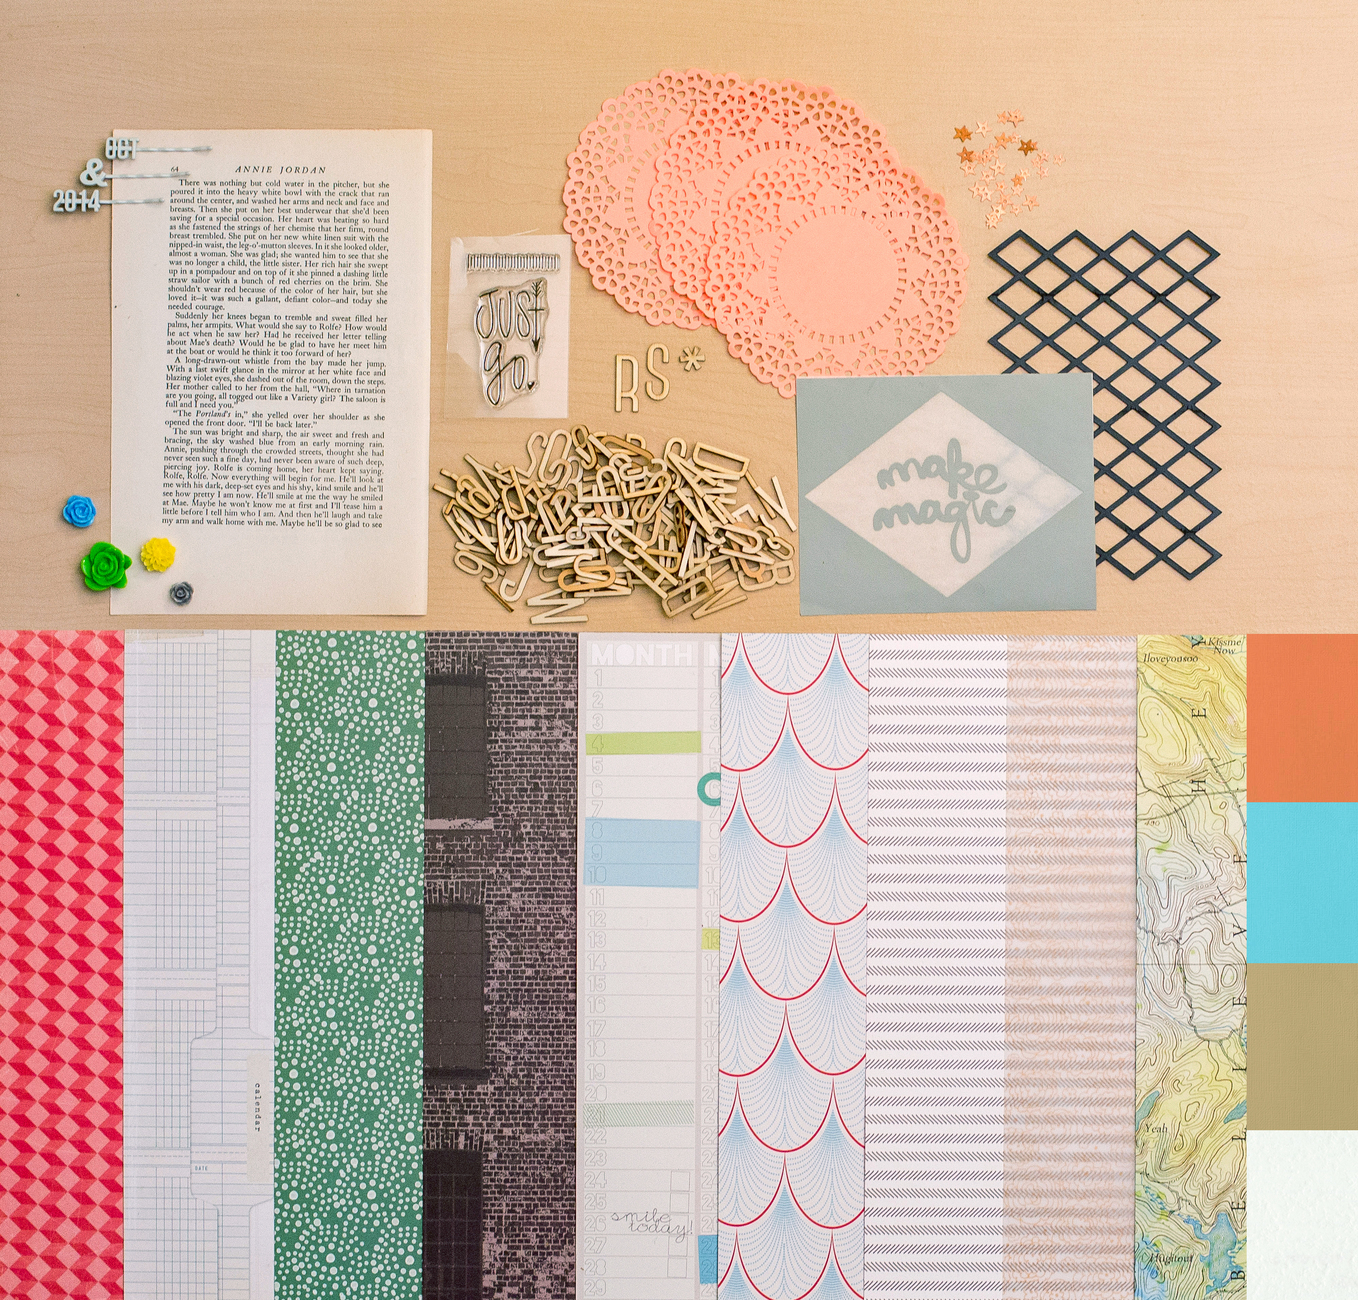 Picture 1 of THE UNDERGROUND Scrapbook Kit